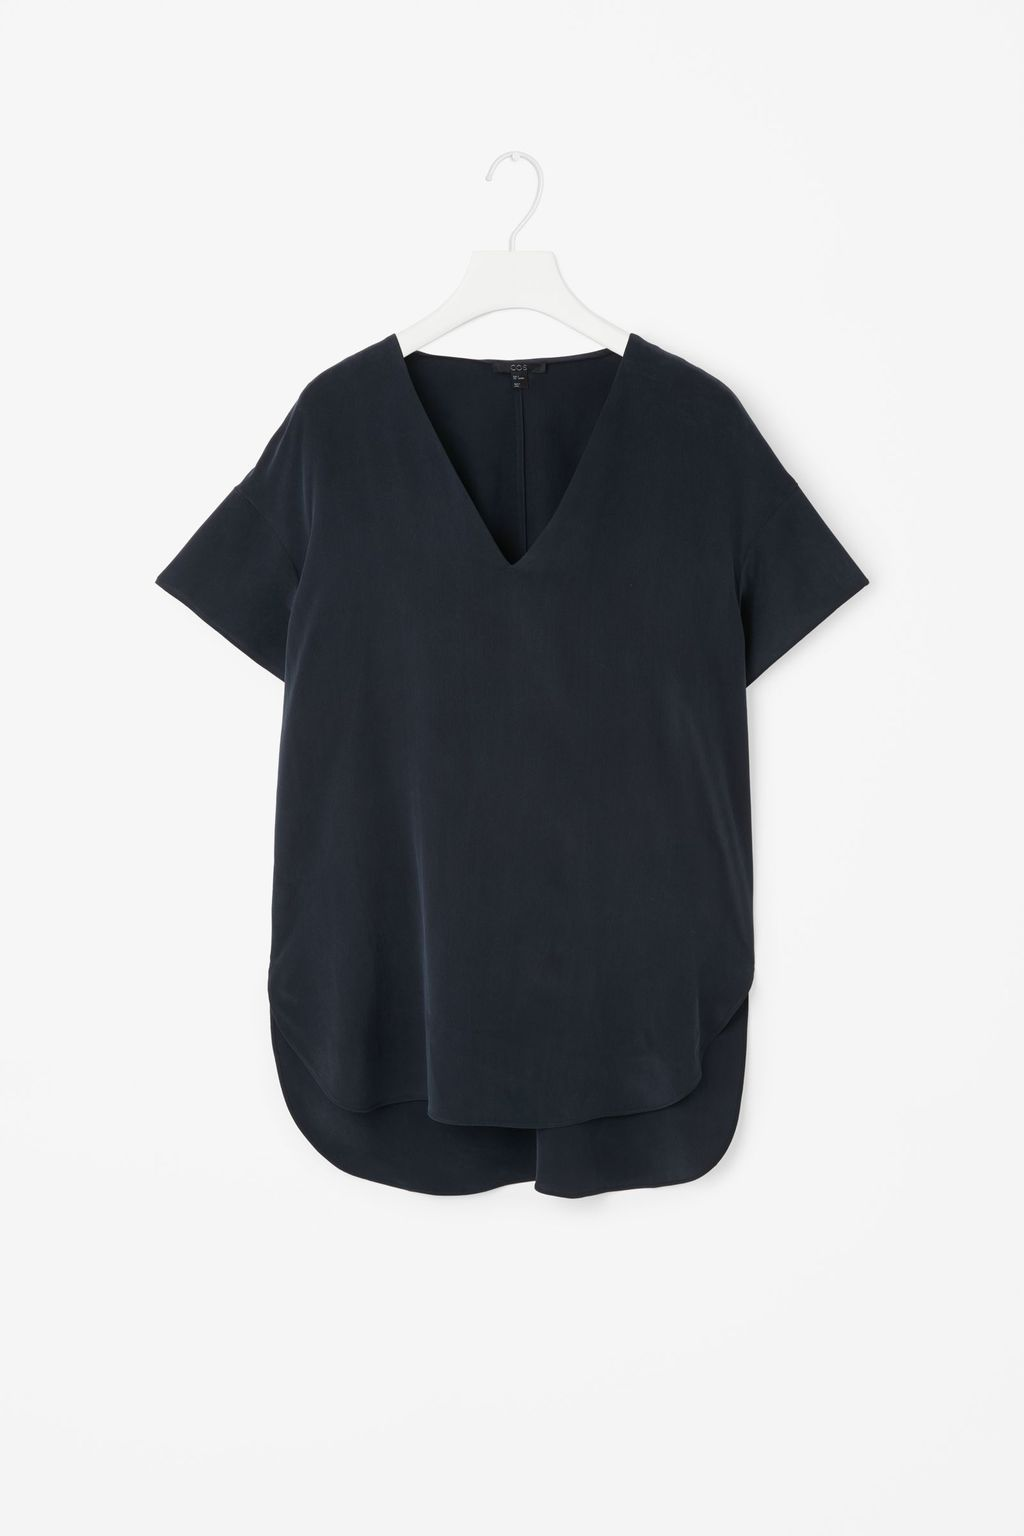 Silk V Neck Top - neckline: v-neck; pattern: plain; predominant colour: black; occasions: casual; length: standard; style: top; fibres: silk - 100%; fit: body skimming; sleeve length: short sleeve; sleeve style: standard; texture group: silky - light; pattern type: fabric; season: s/s 2016; wardrobe: basic